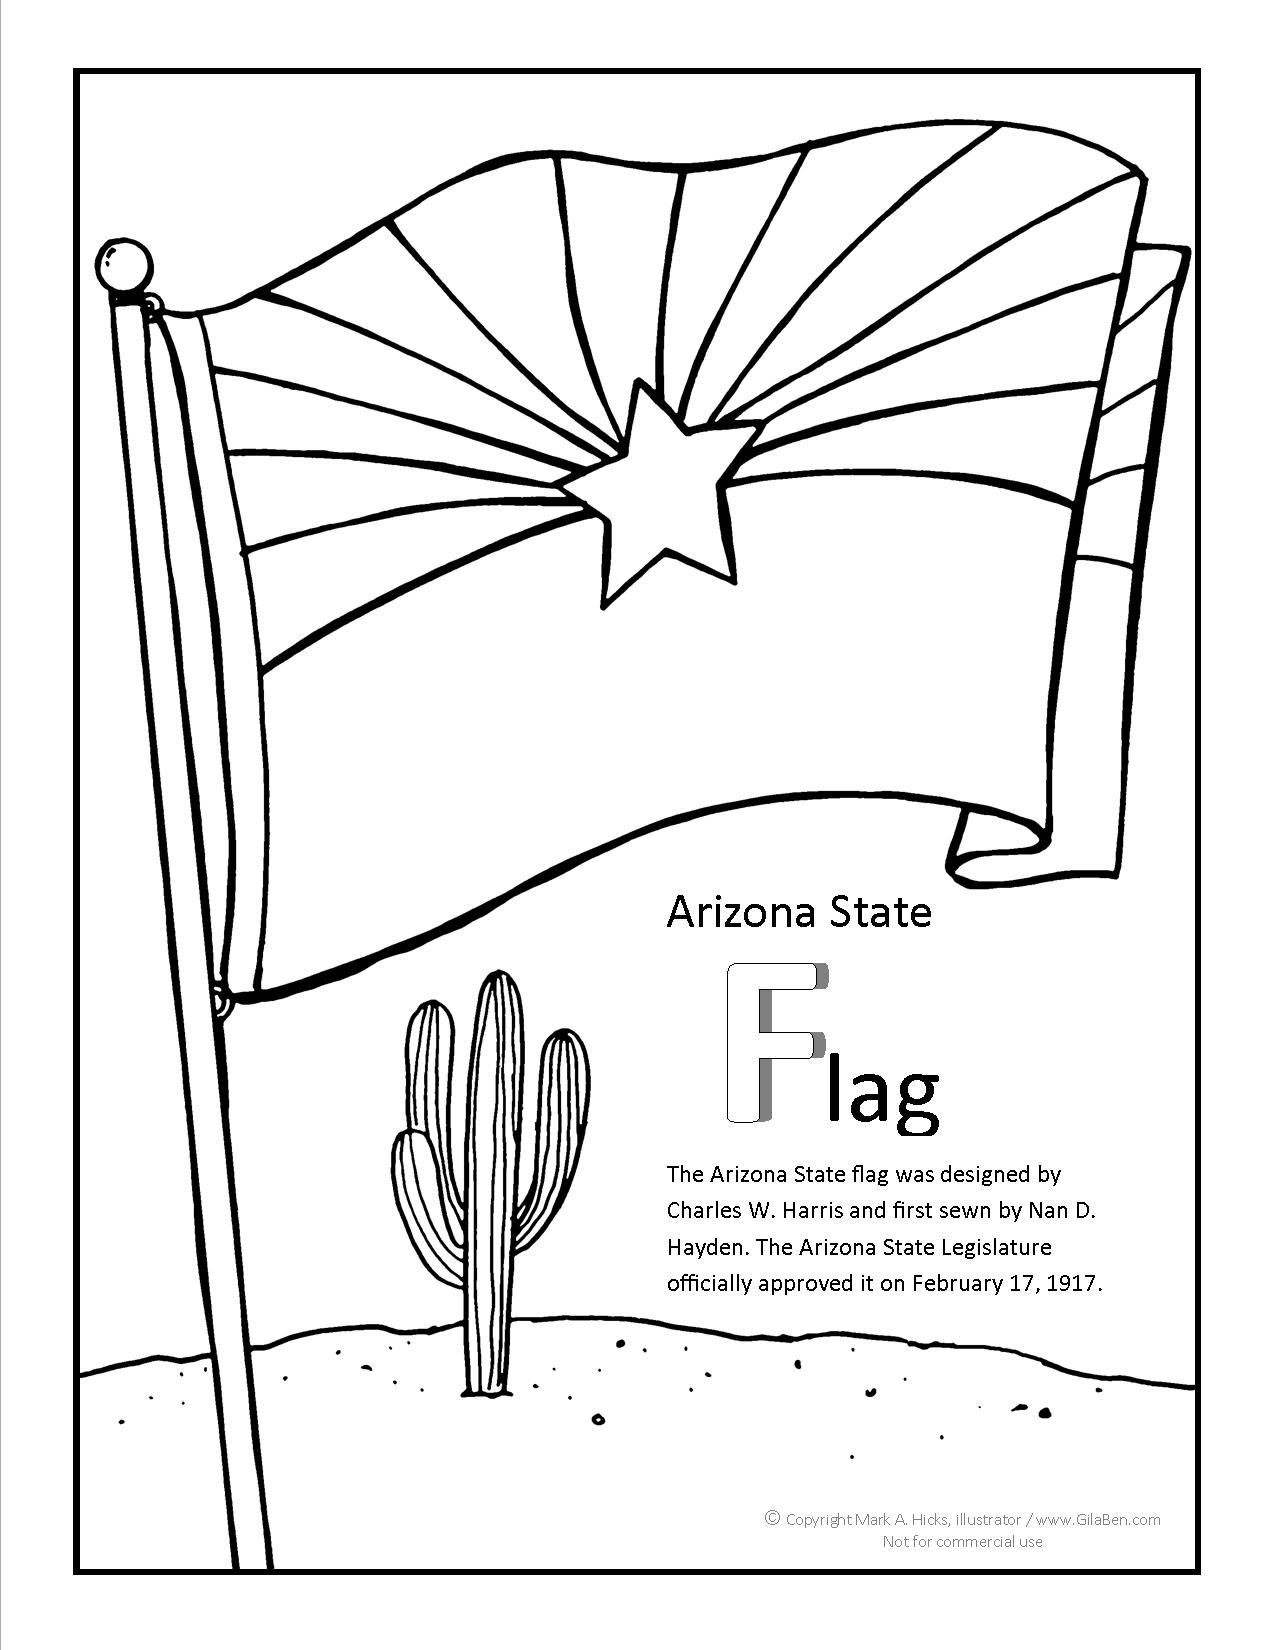 Arizona Coloring Pages | To Download Or Print The Arizona